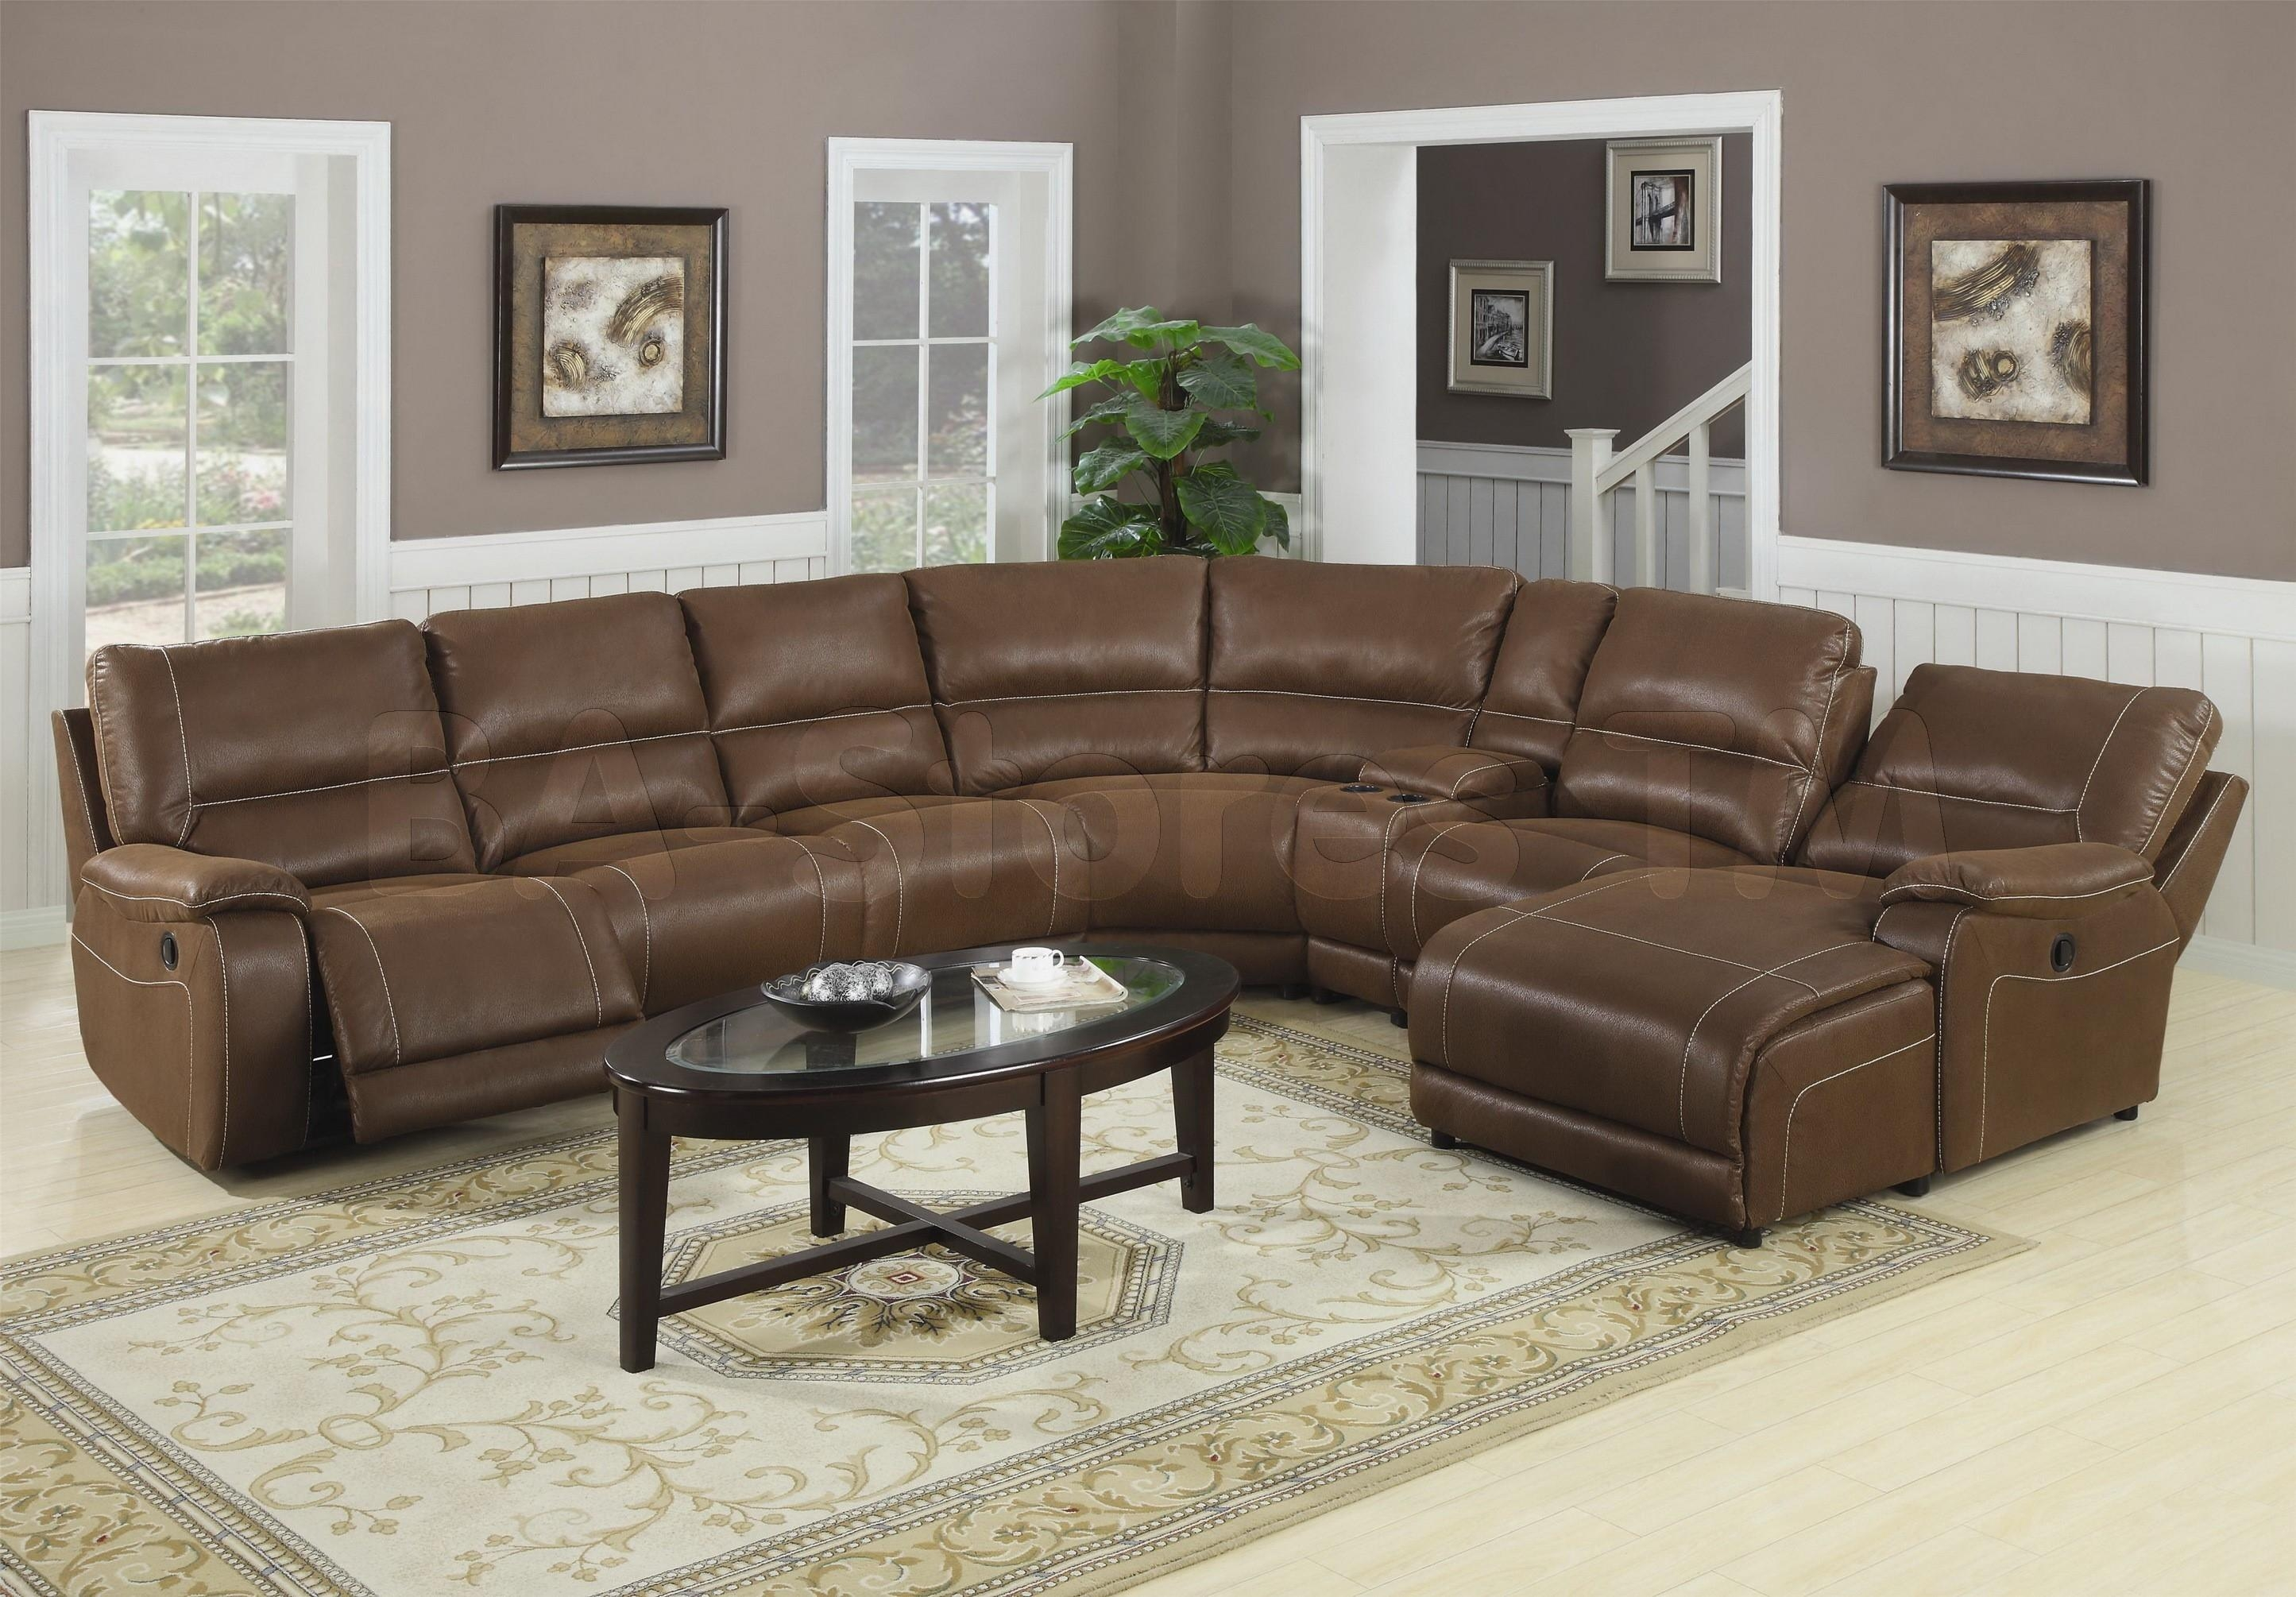 Leather Sofas | Umpsa 78 Sofas Inside High Quality Leather Sectional (Image 10 of 20)